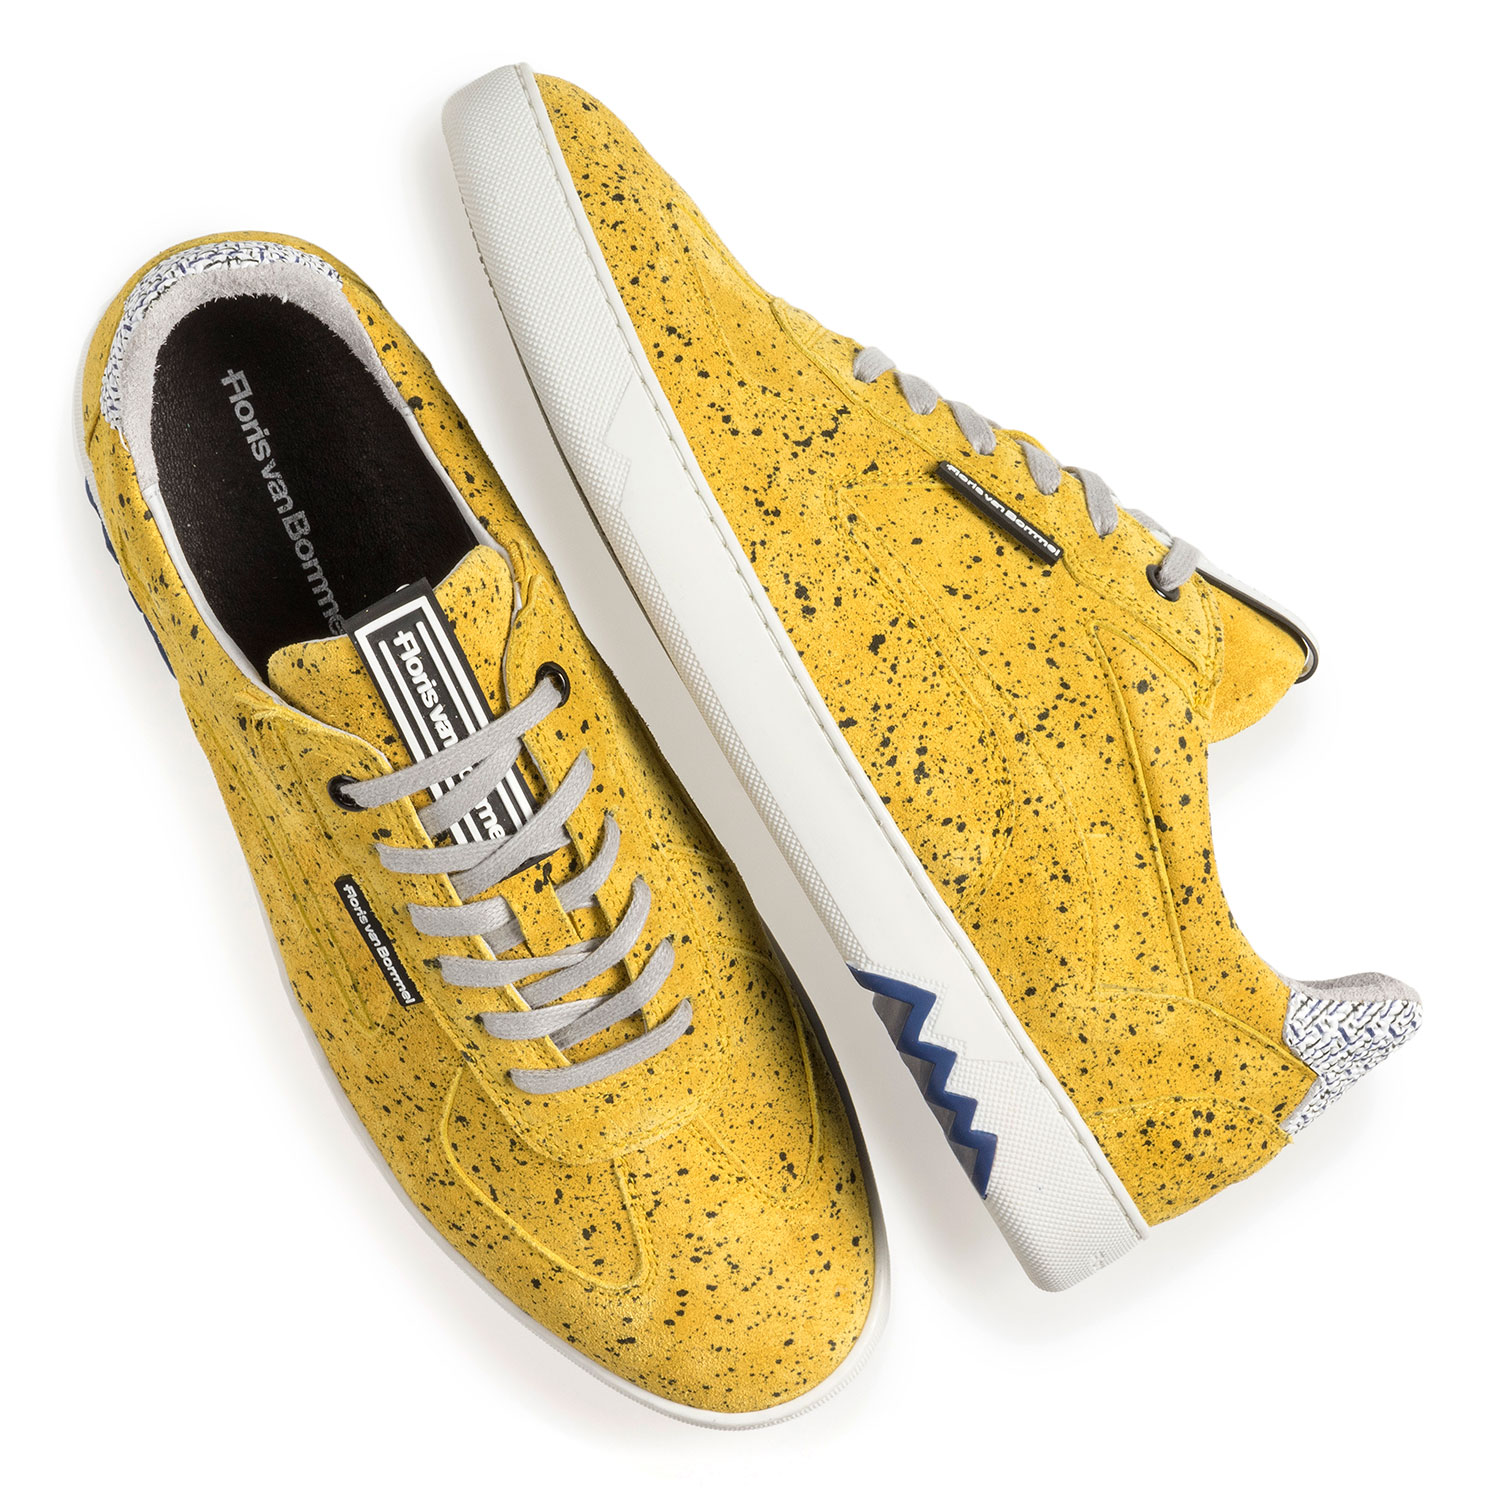 16342/19 - Yellow suede leather sneaker with black print